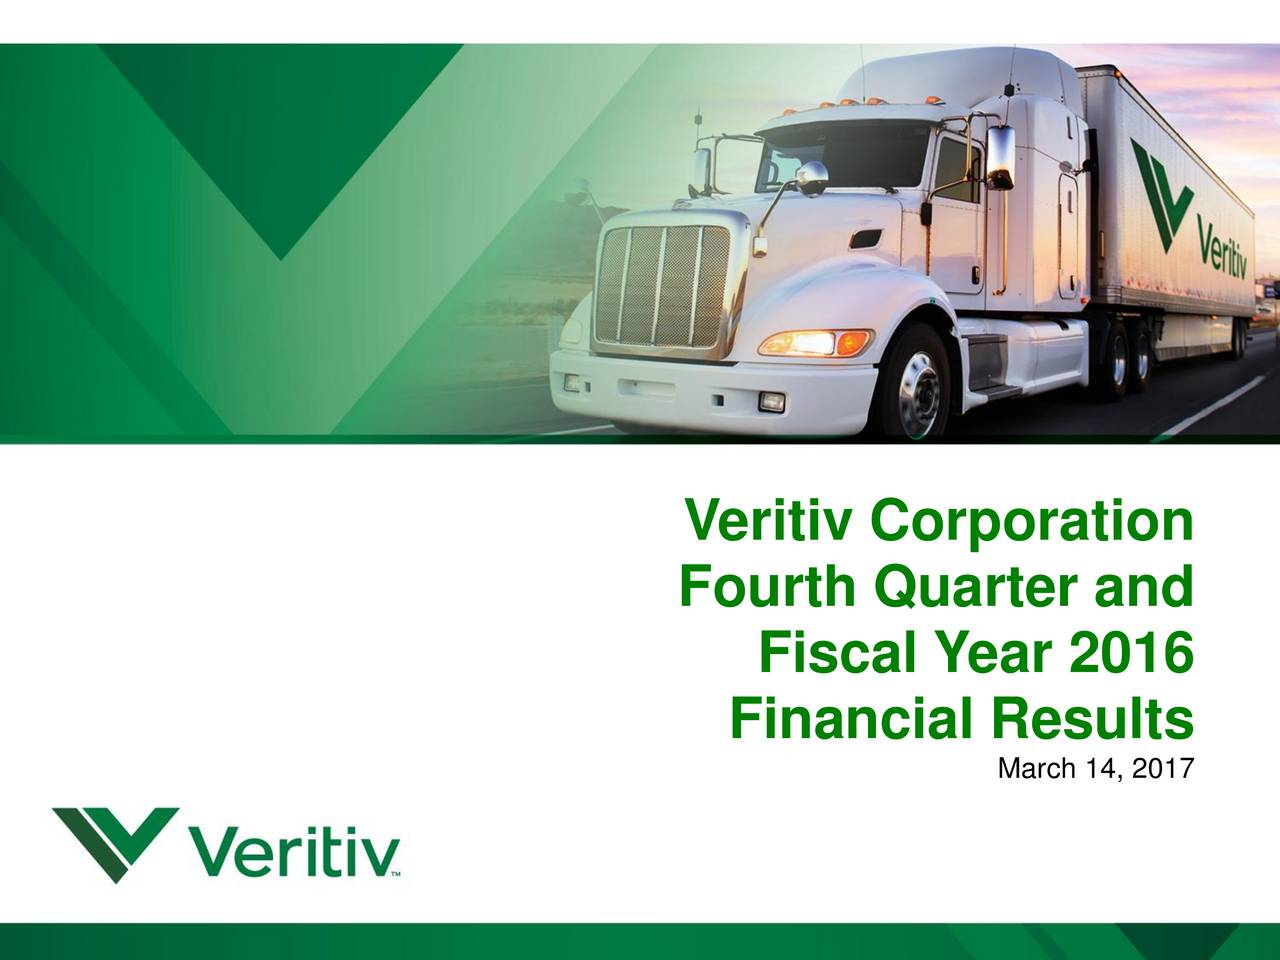 Fourth Quarter and Fiscal Year 2016 Financial Results March 14, 2017